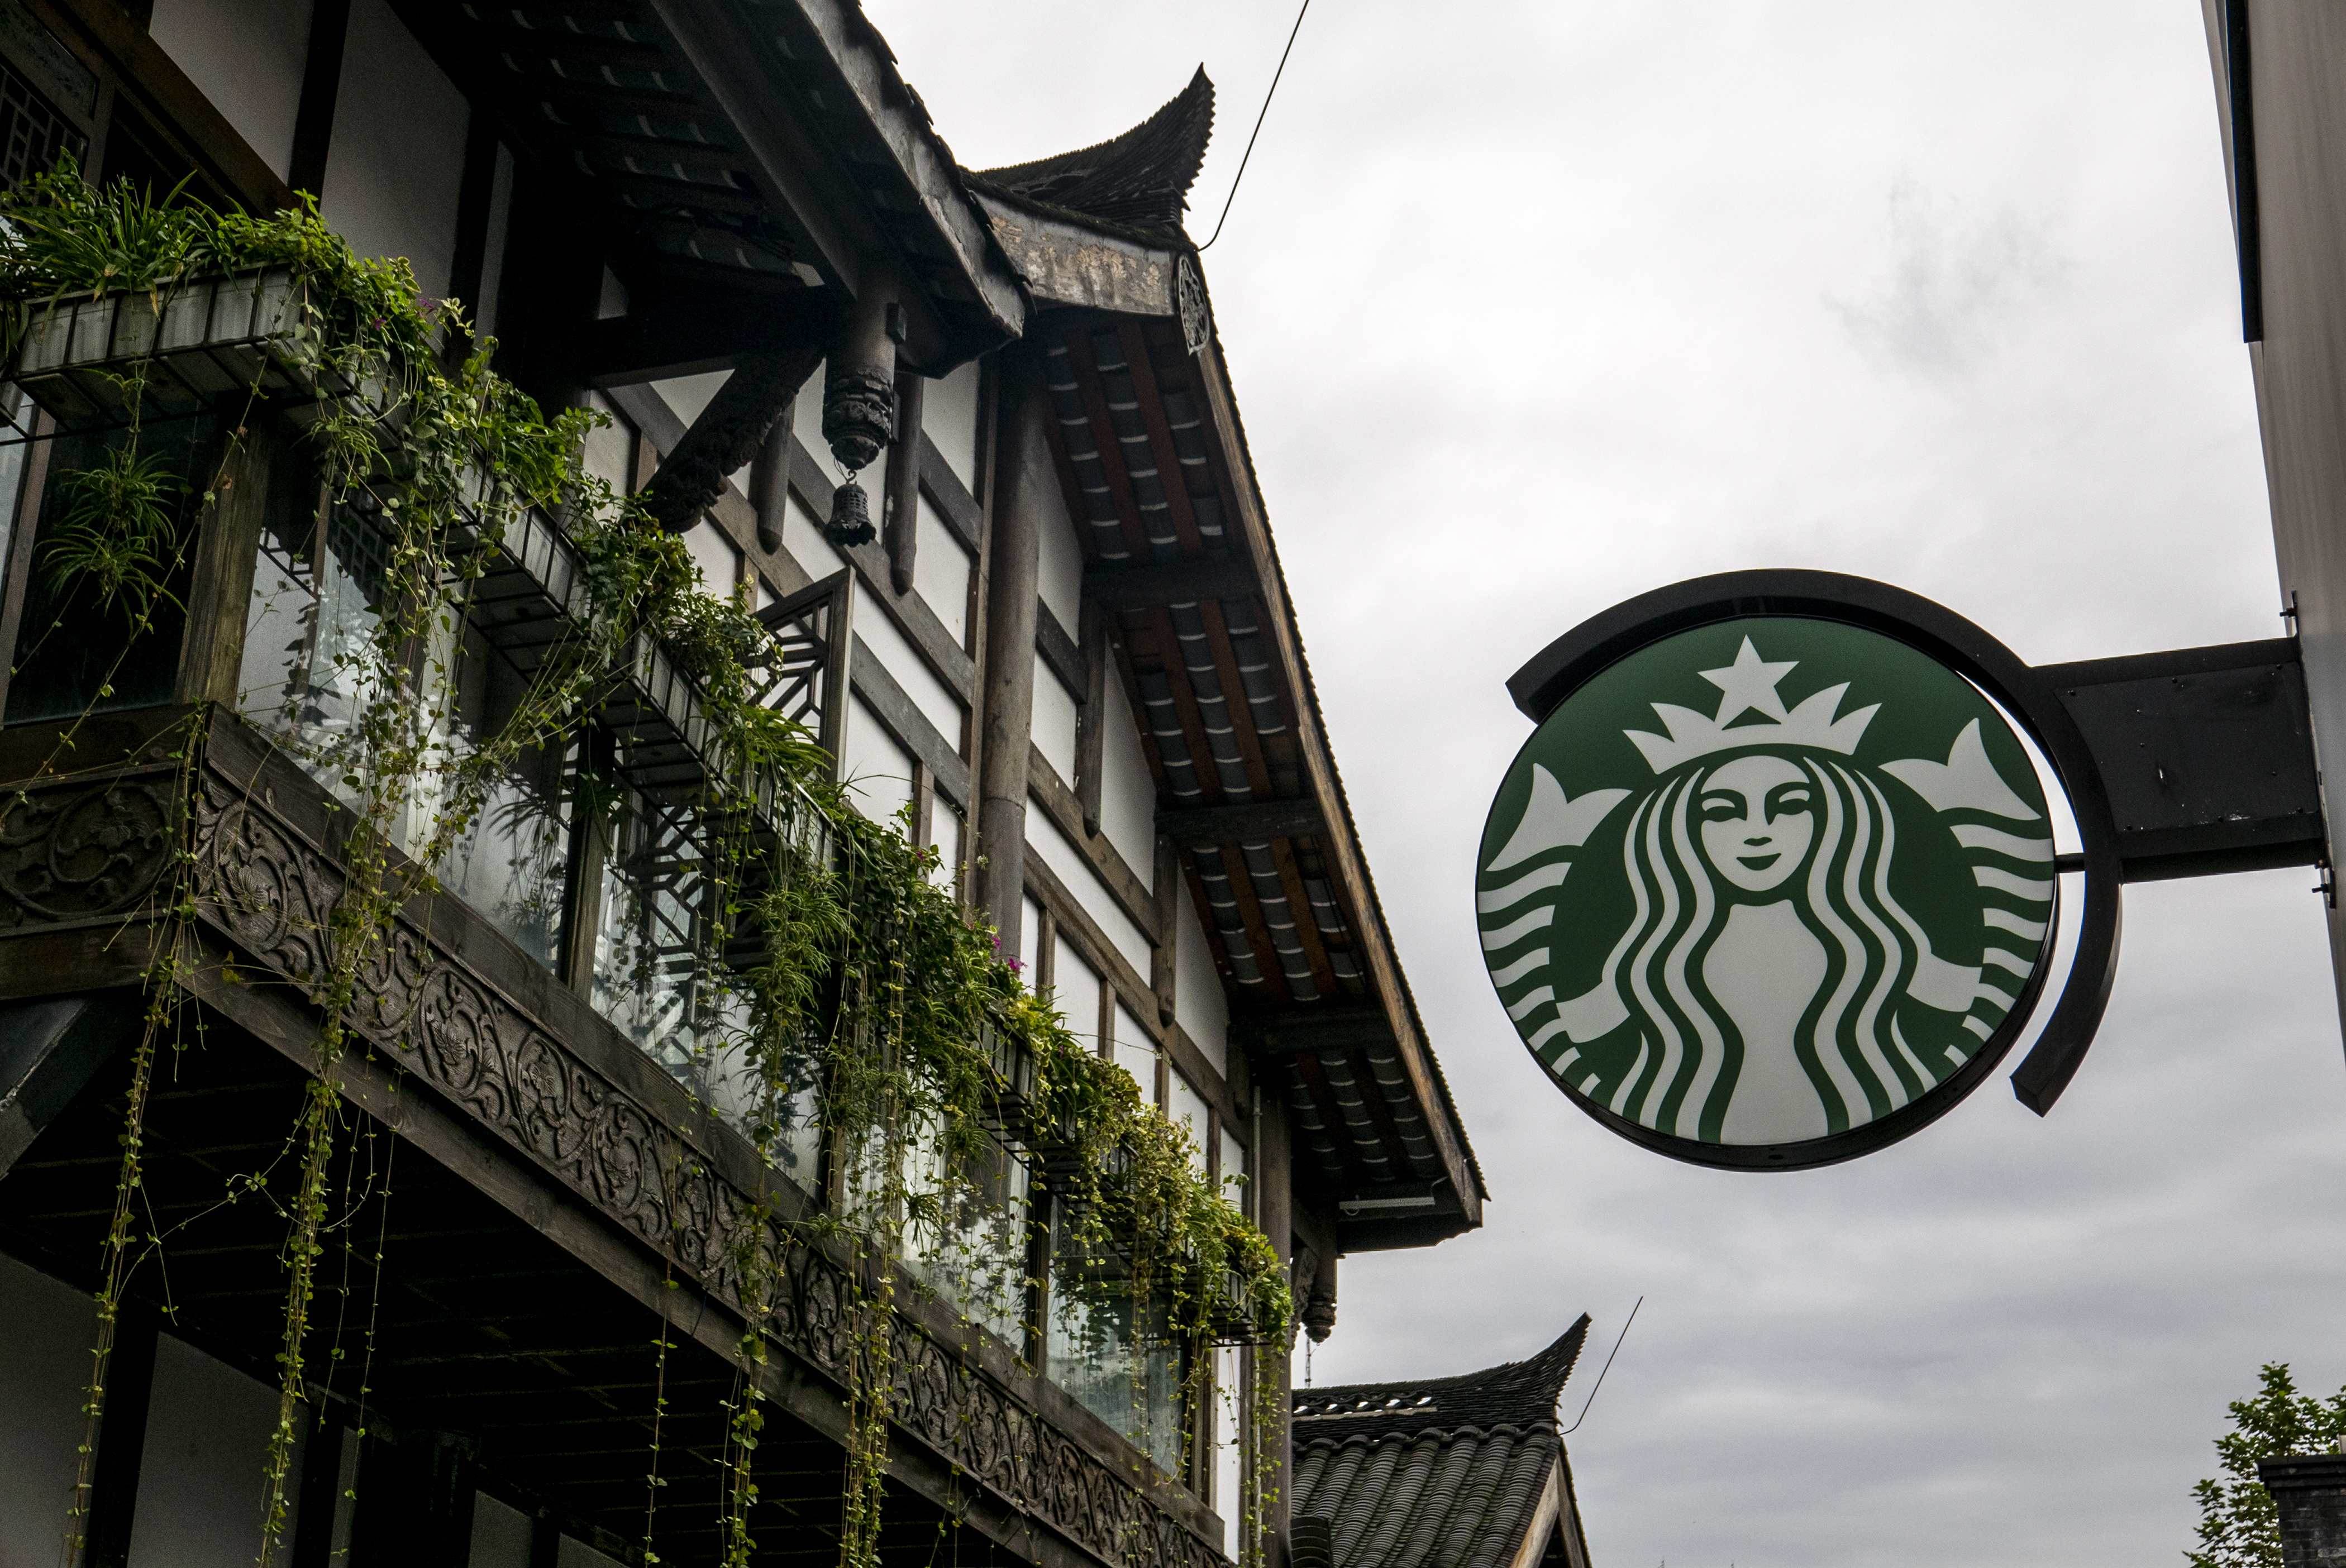 Logo of a Starbucks cafe in Kuan Zhai Alley,  one of the top